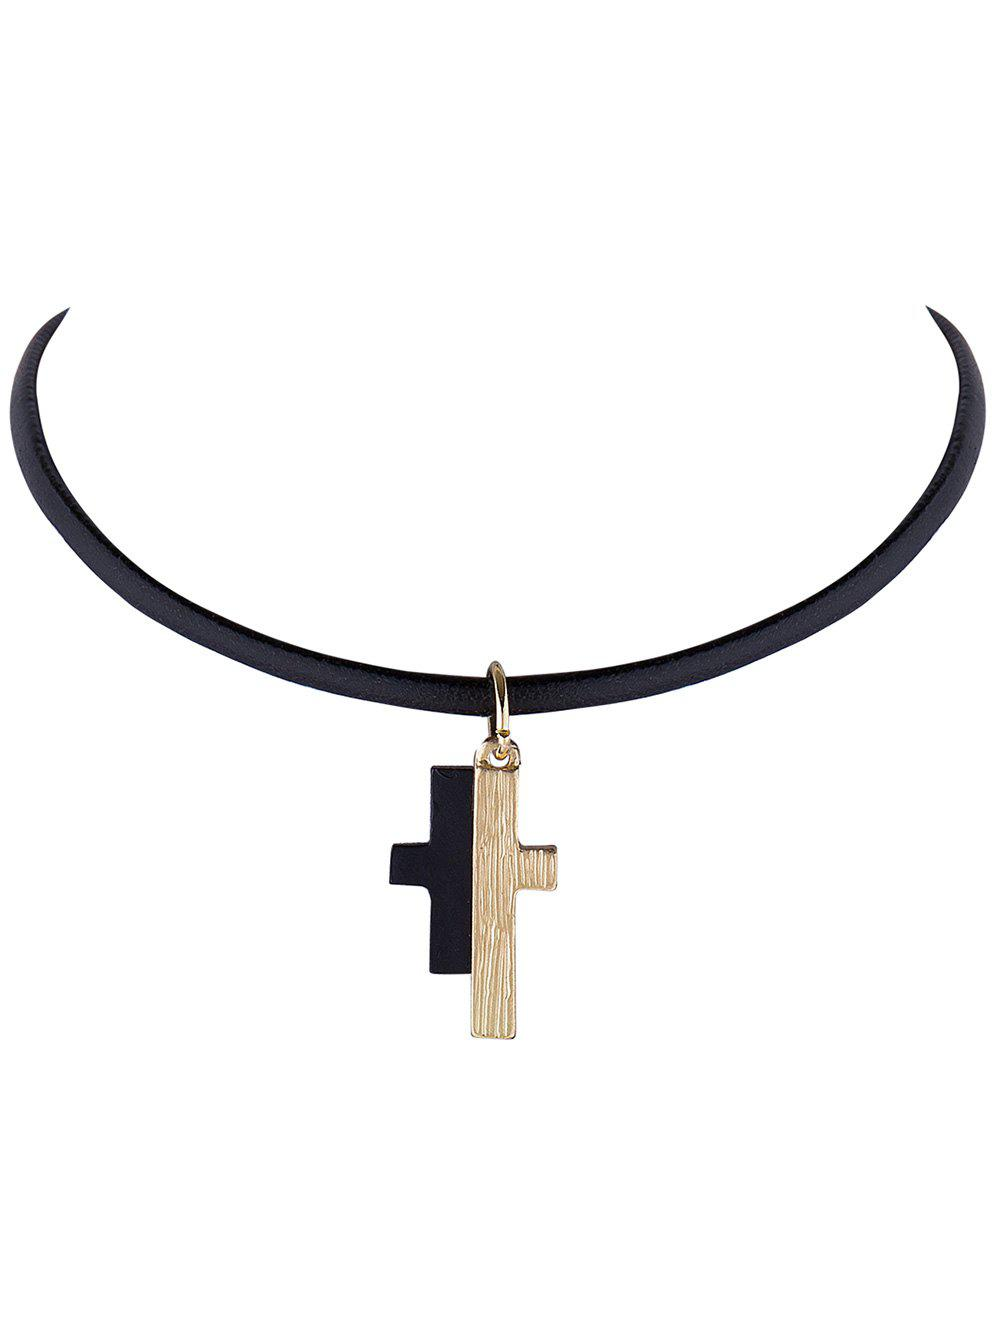 Spliced Cross Faux Leather Rope Choker Necklace